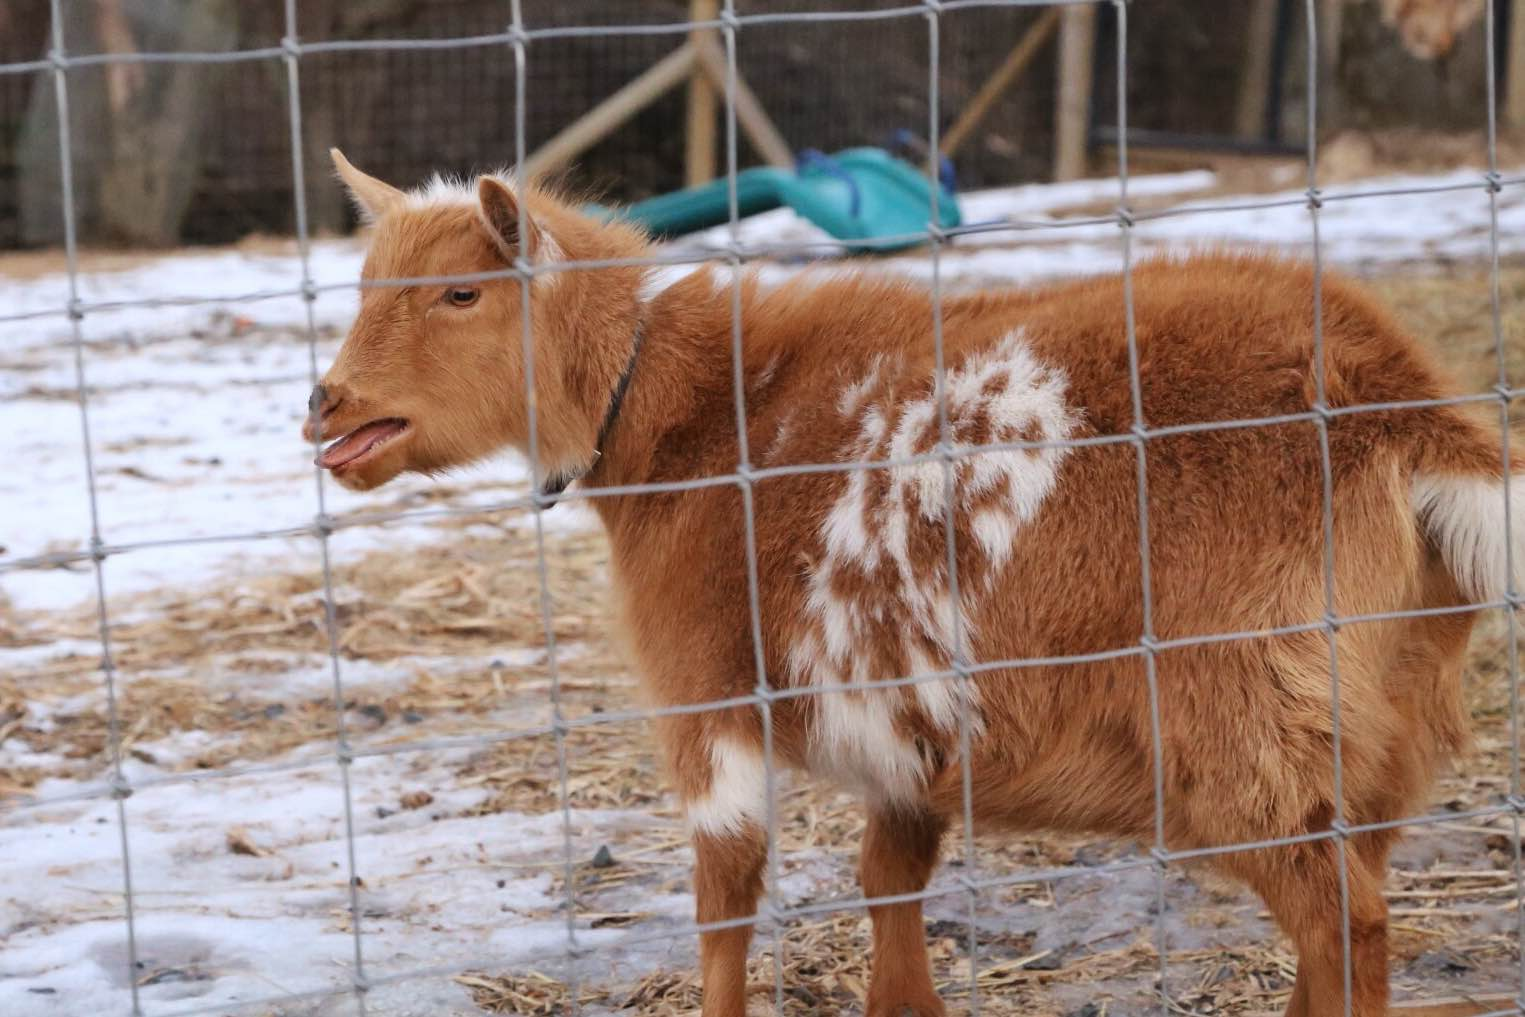 A pregnant Finny. Baby goats this spring!